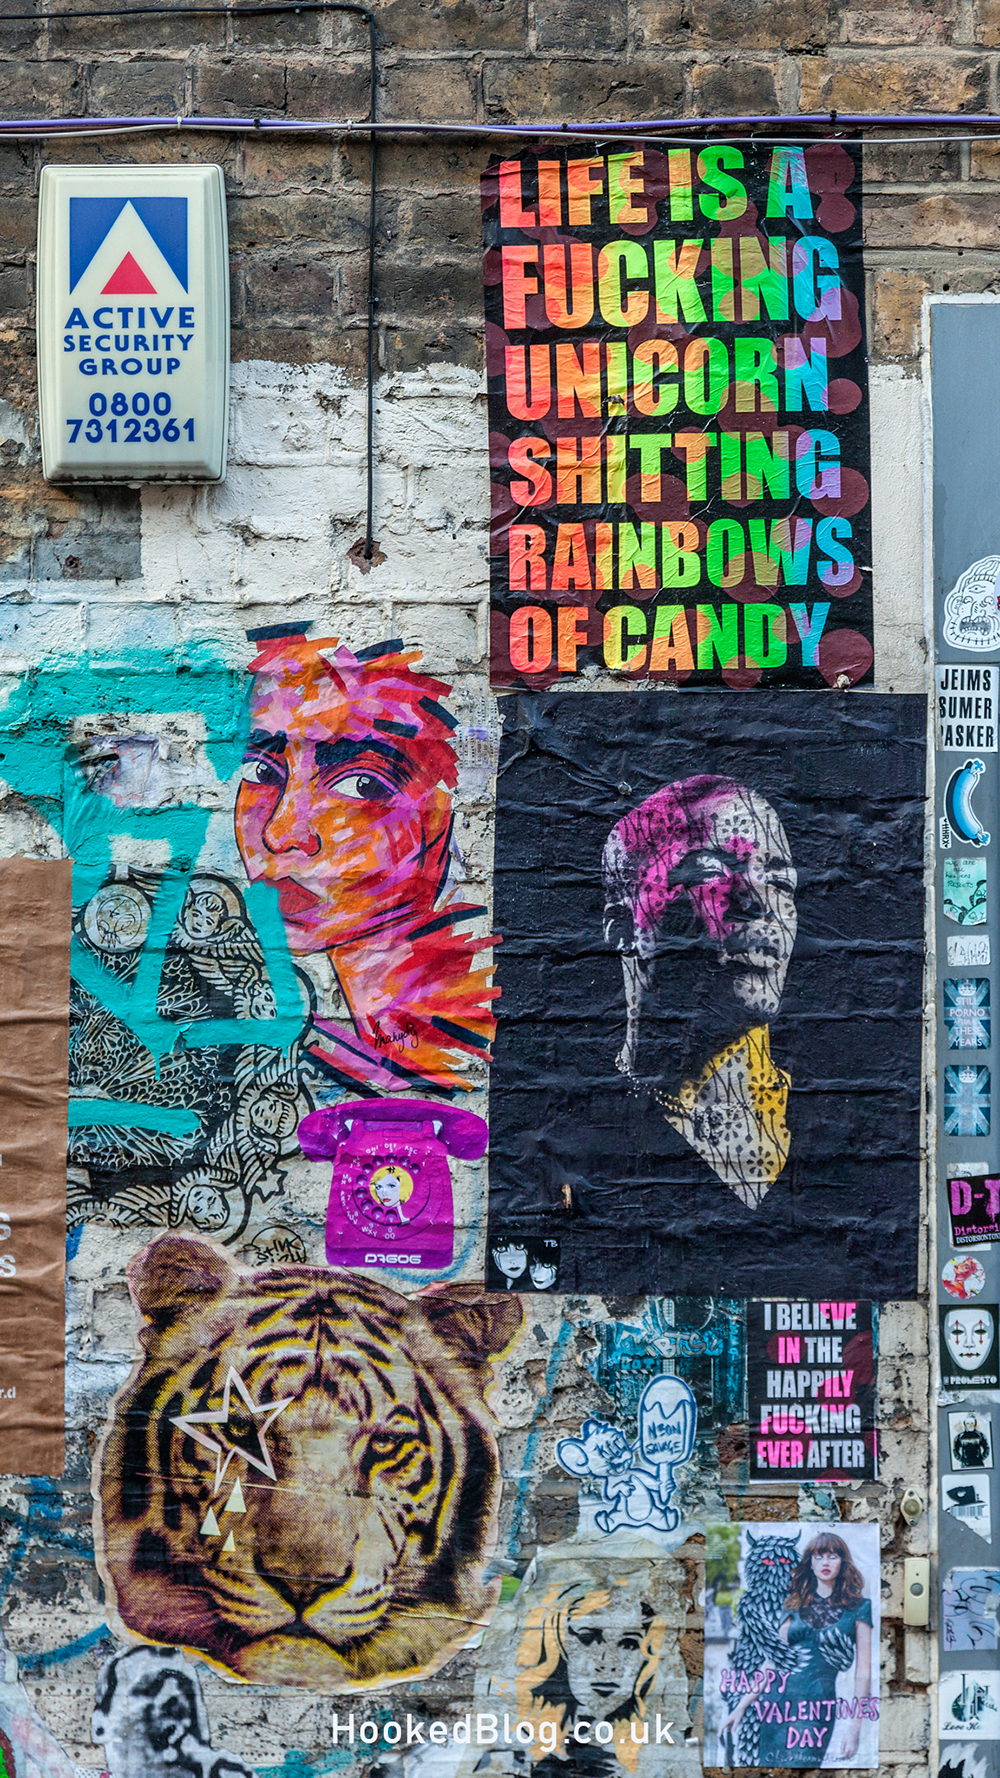 Street Artists Aida Wilde, Donk And Zombiesqueegee hit the Streets of London